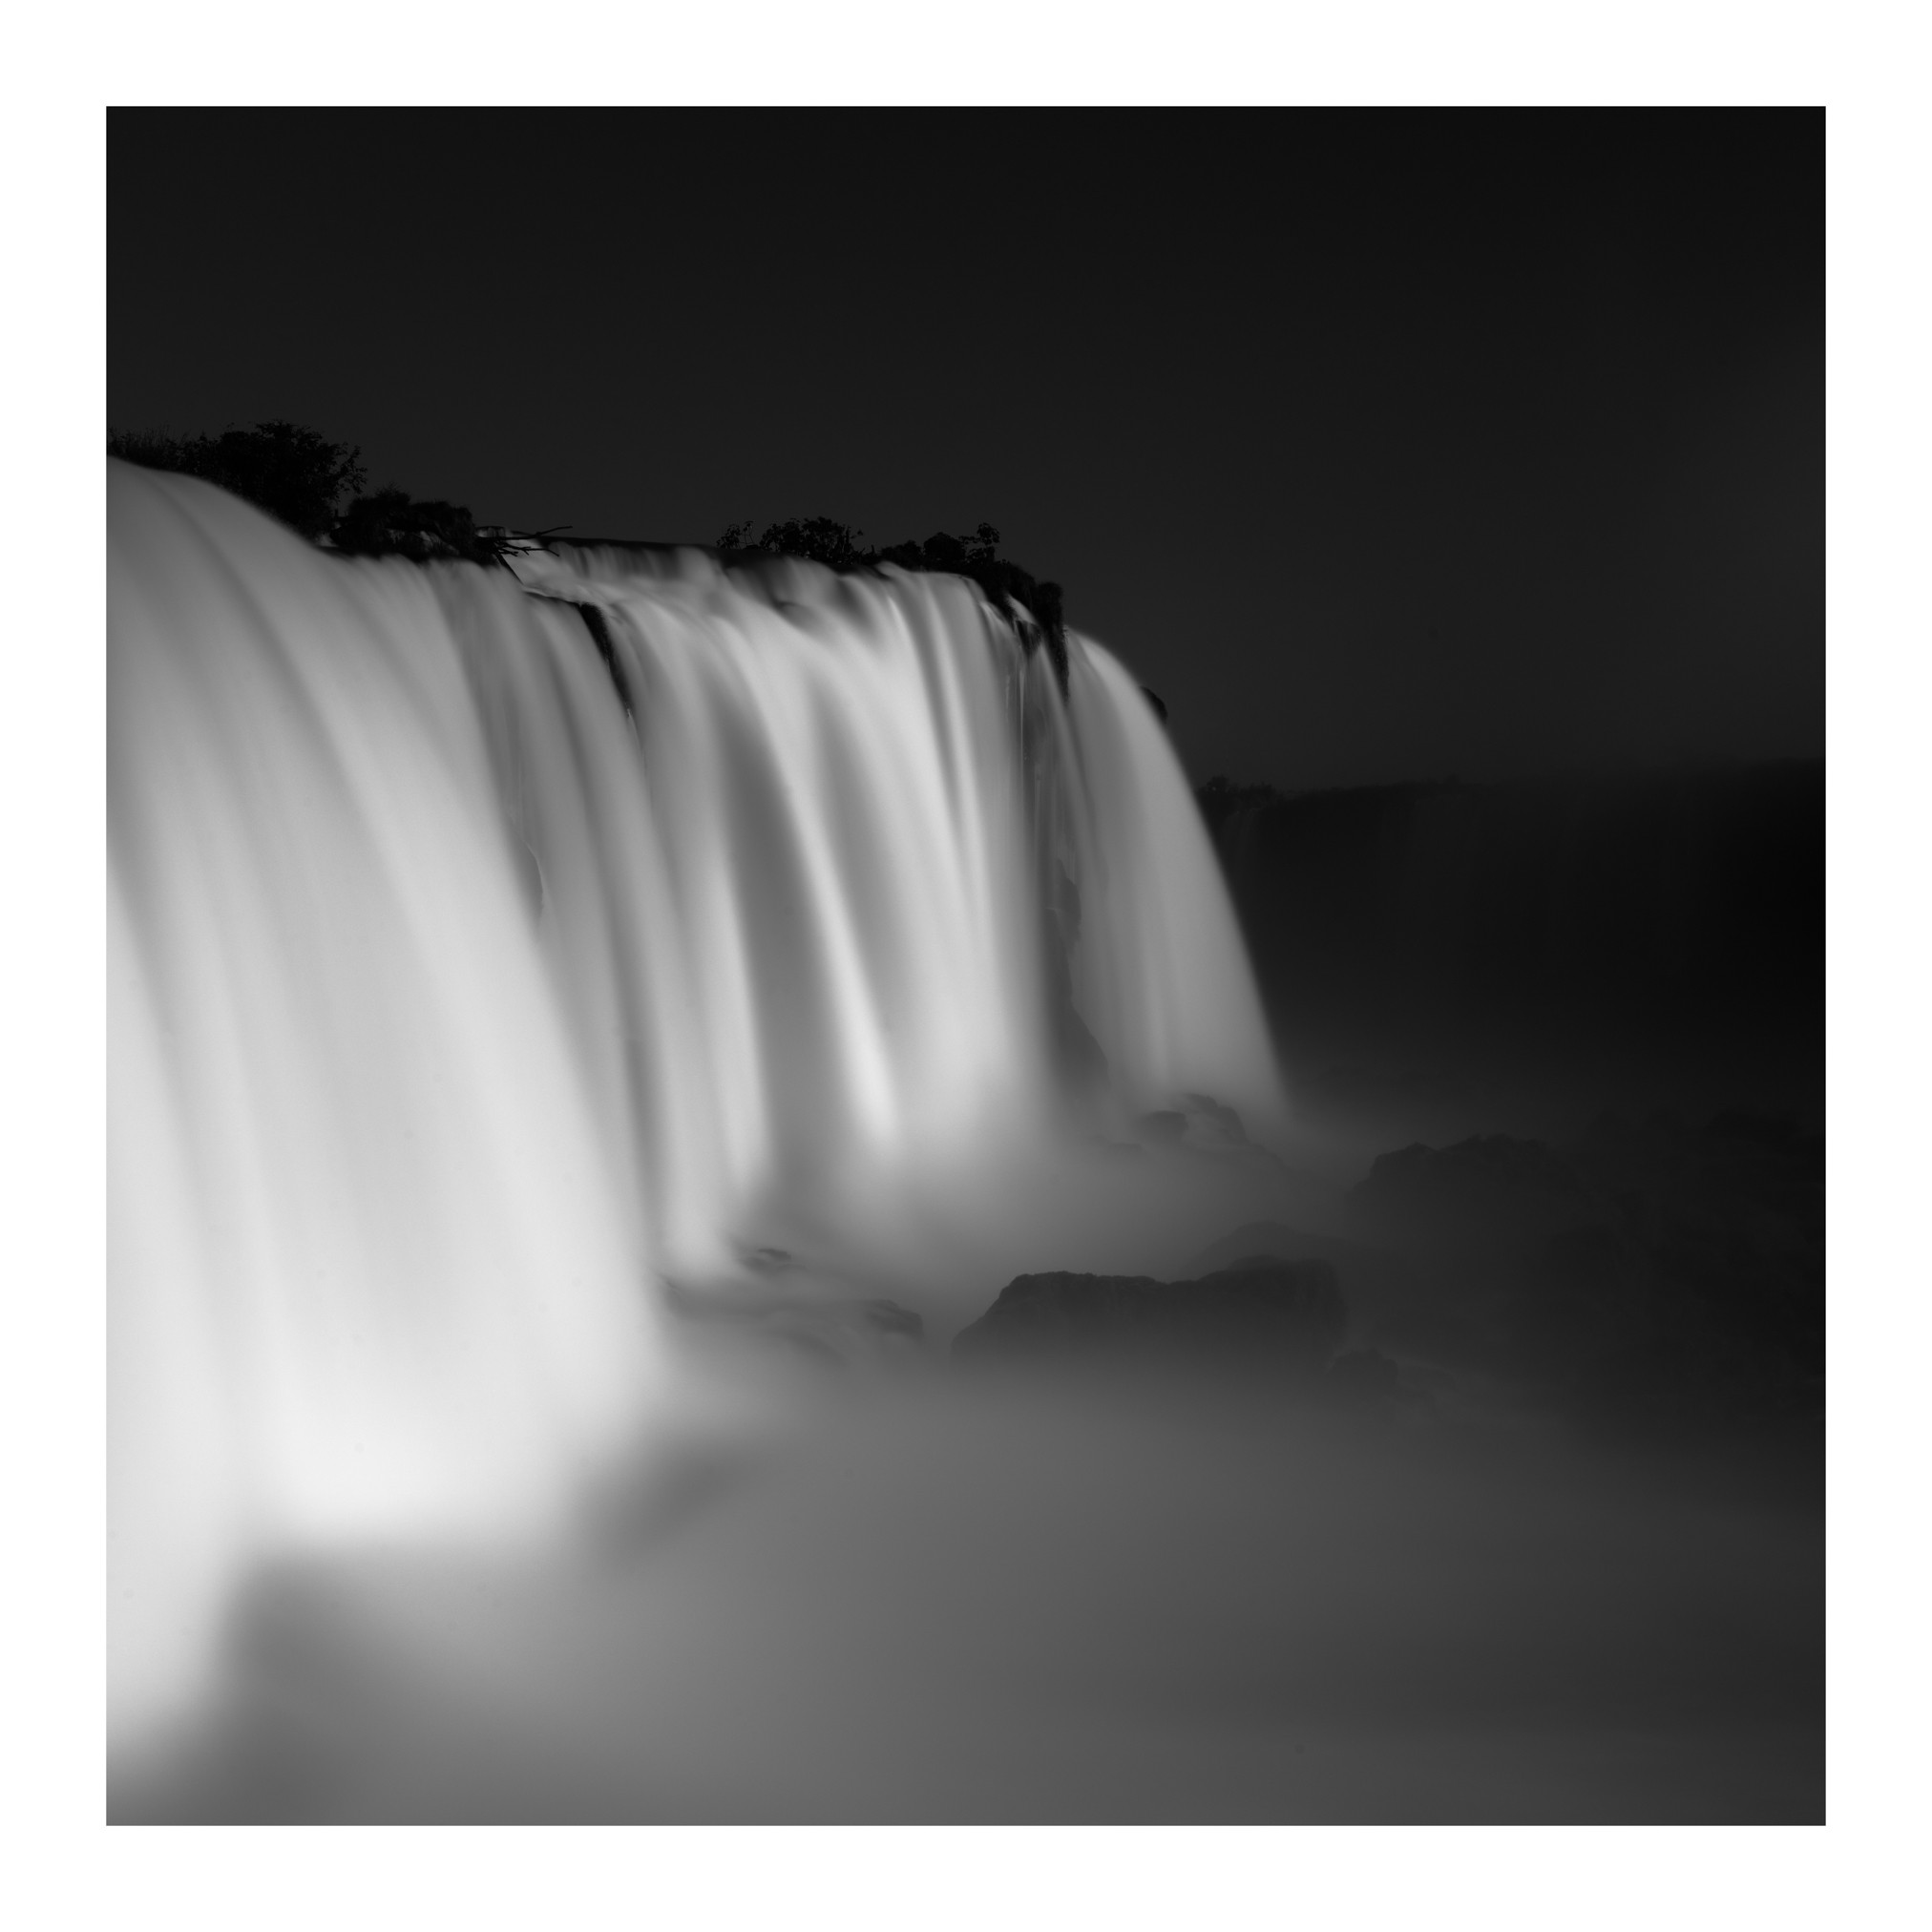 Iguazu falls argentina and brazil april 2018 long exposure black and white photography nikon d810 zeiss 18mm